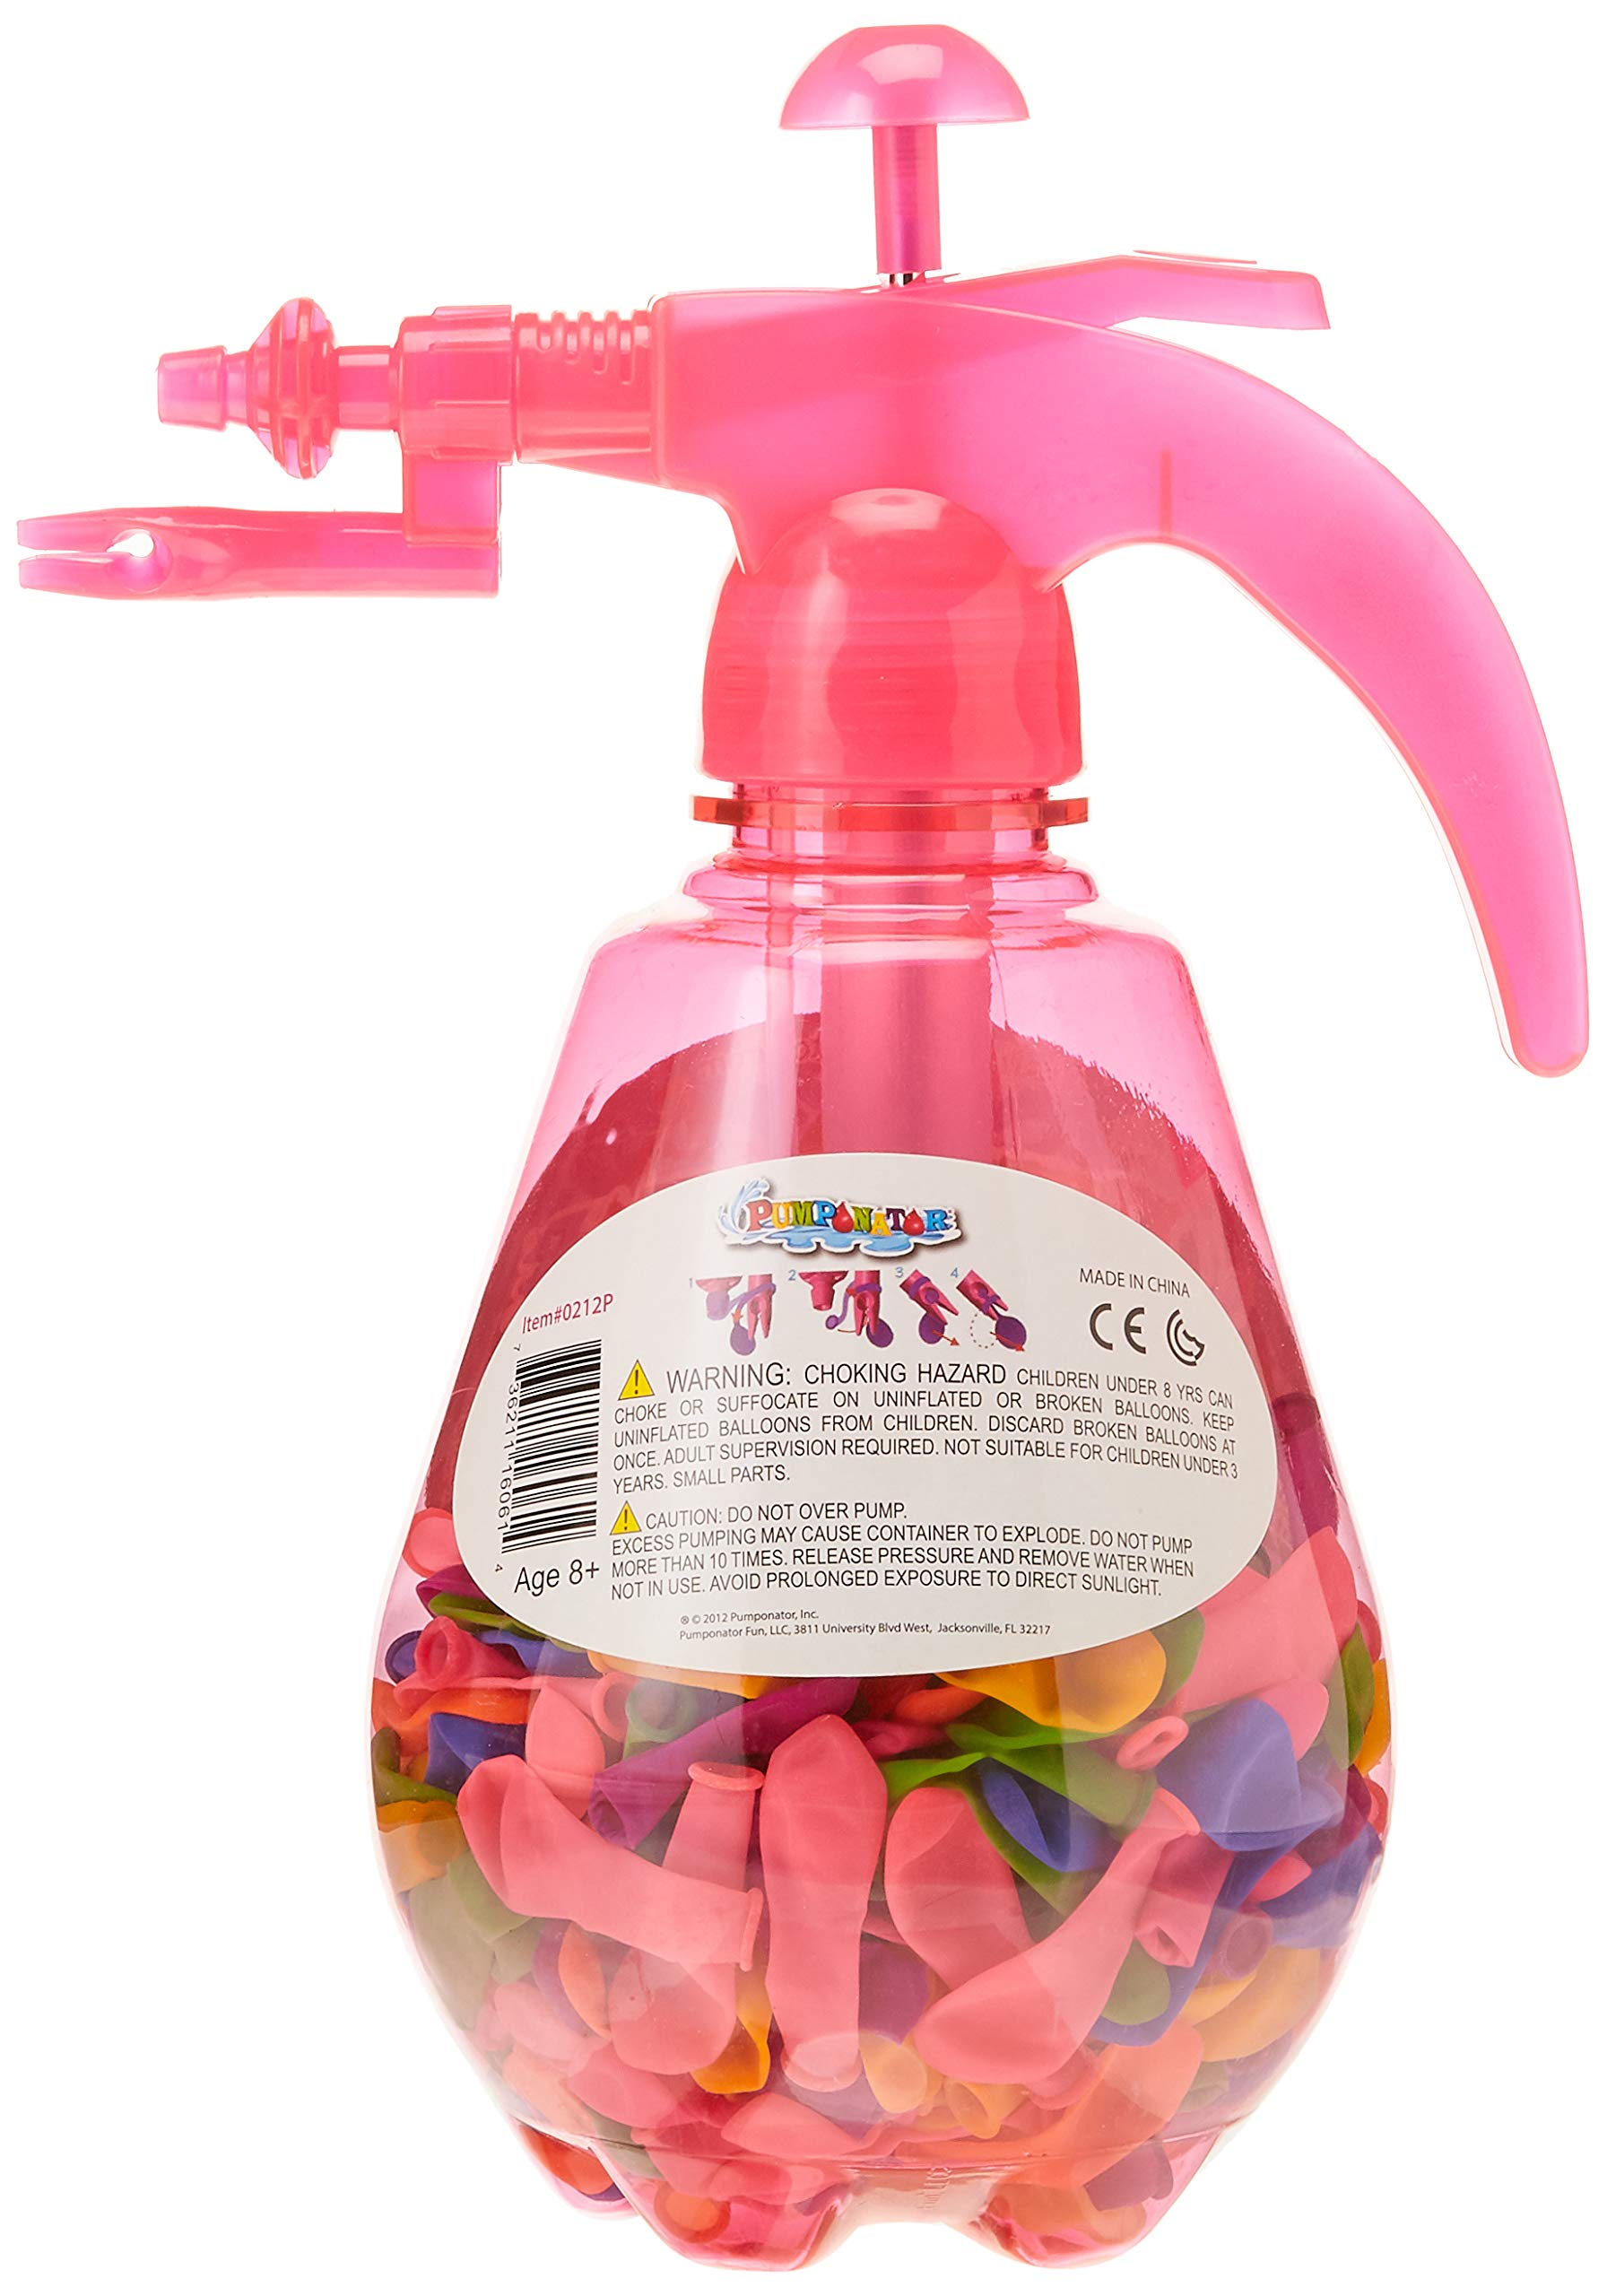 Pumponator Water Balloon Pump (Pink) and Tube o' Balloons Gift Bundle Set by Pumponator (Image #2)